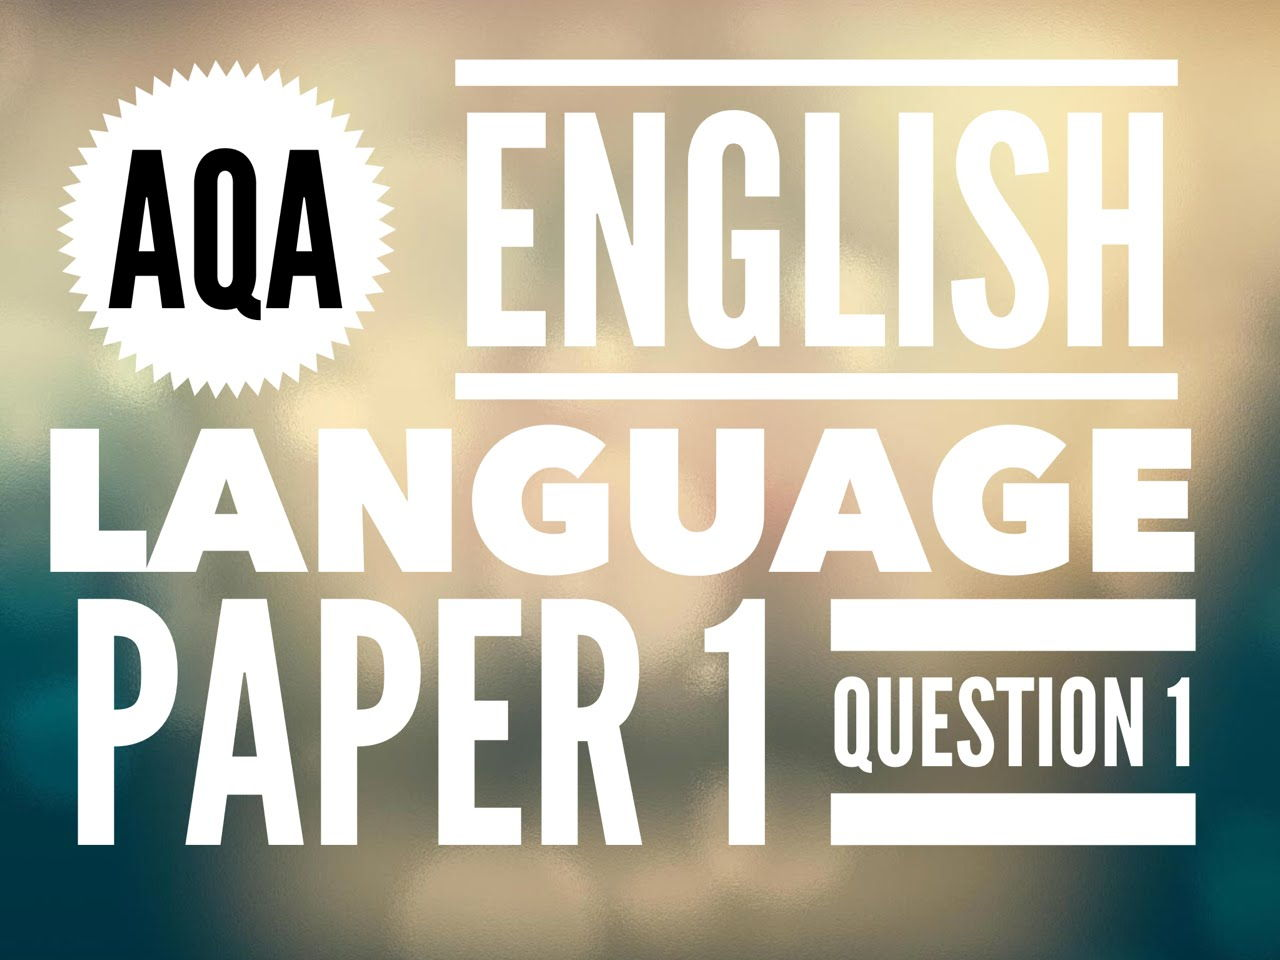 english language 1 Buy gcse english language aqa revision guide - for the grade 9-1 course ( cgp gcse english 9-1 revision) by cgp books (isbn: 9781782943693) from.